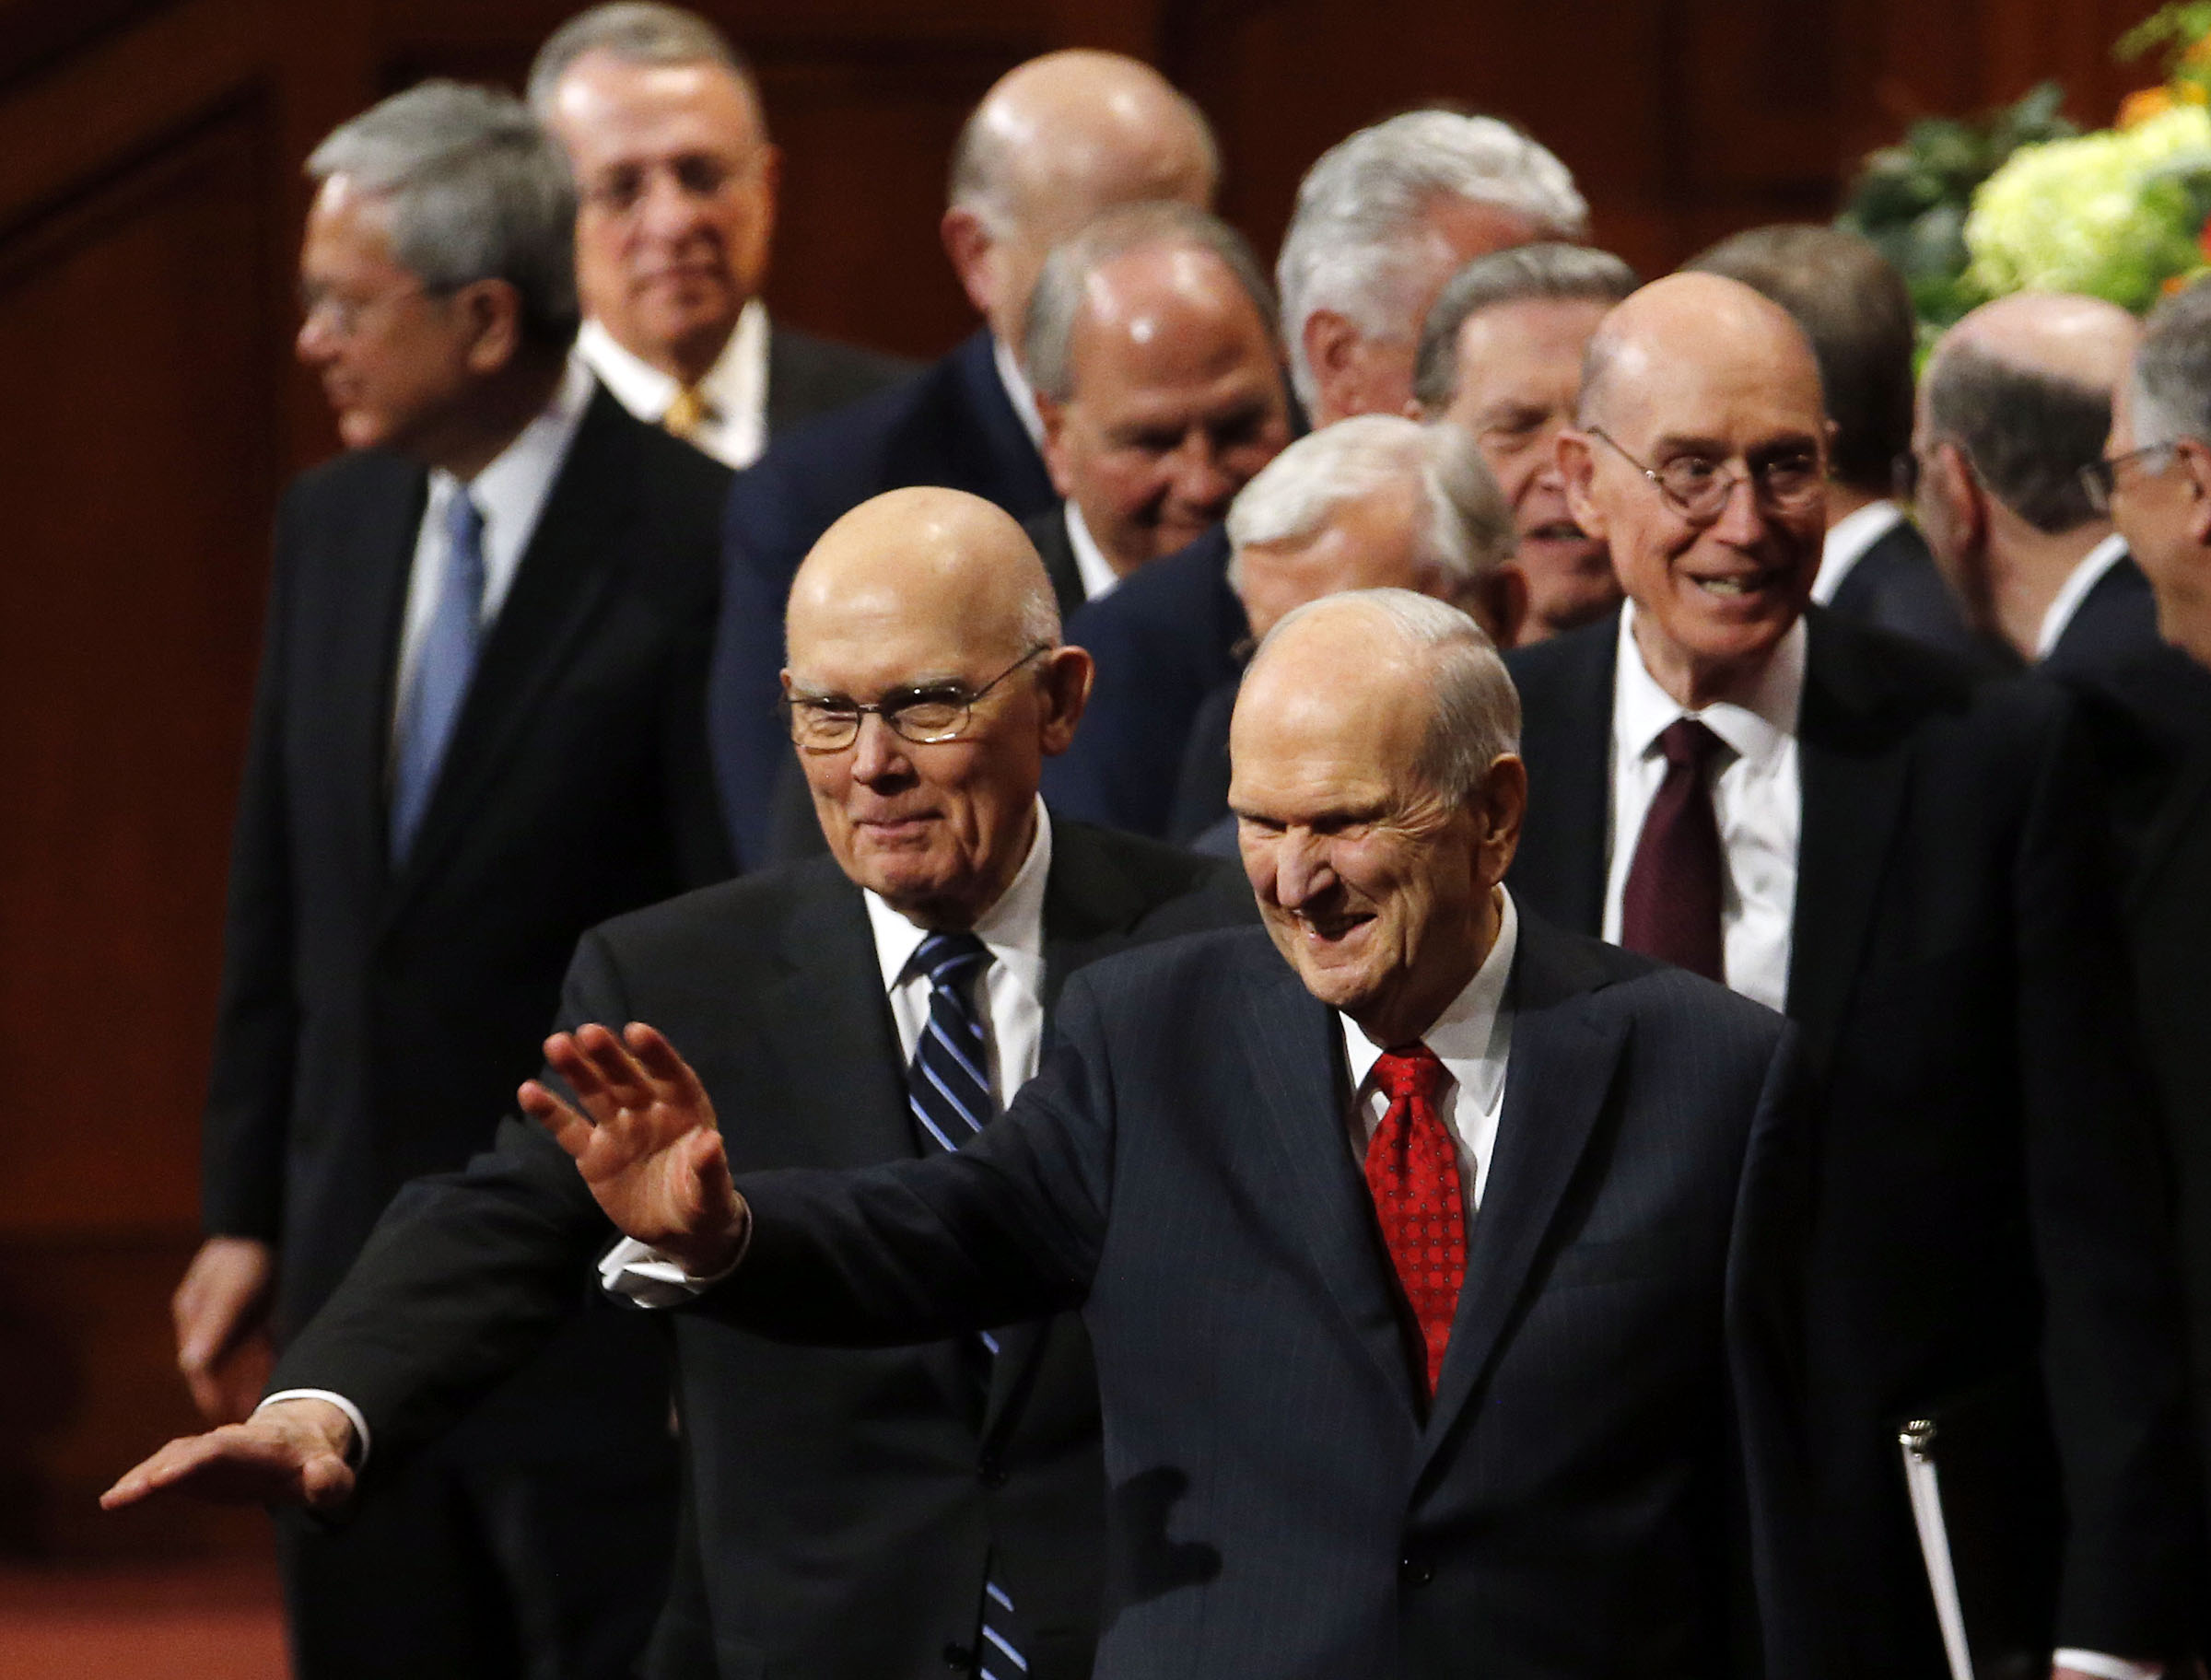 President Russell M. Nelson of The Church of Jesus Christ of Latter-day Saints, front, waves as he and his counselors, President Dallin H. Oaks, first counselor in the First Presidency, left, and President Henry B. Eyring, second counselor in the First Presidency, right, leave the Conference Center following the priesthood session of the 189th Annual General Conference in Salt Lake City on Saturday, April 6, 2019.